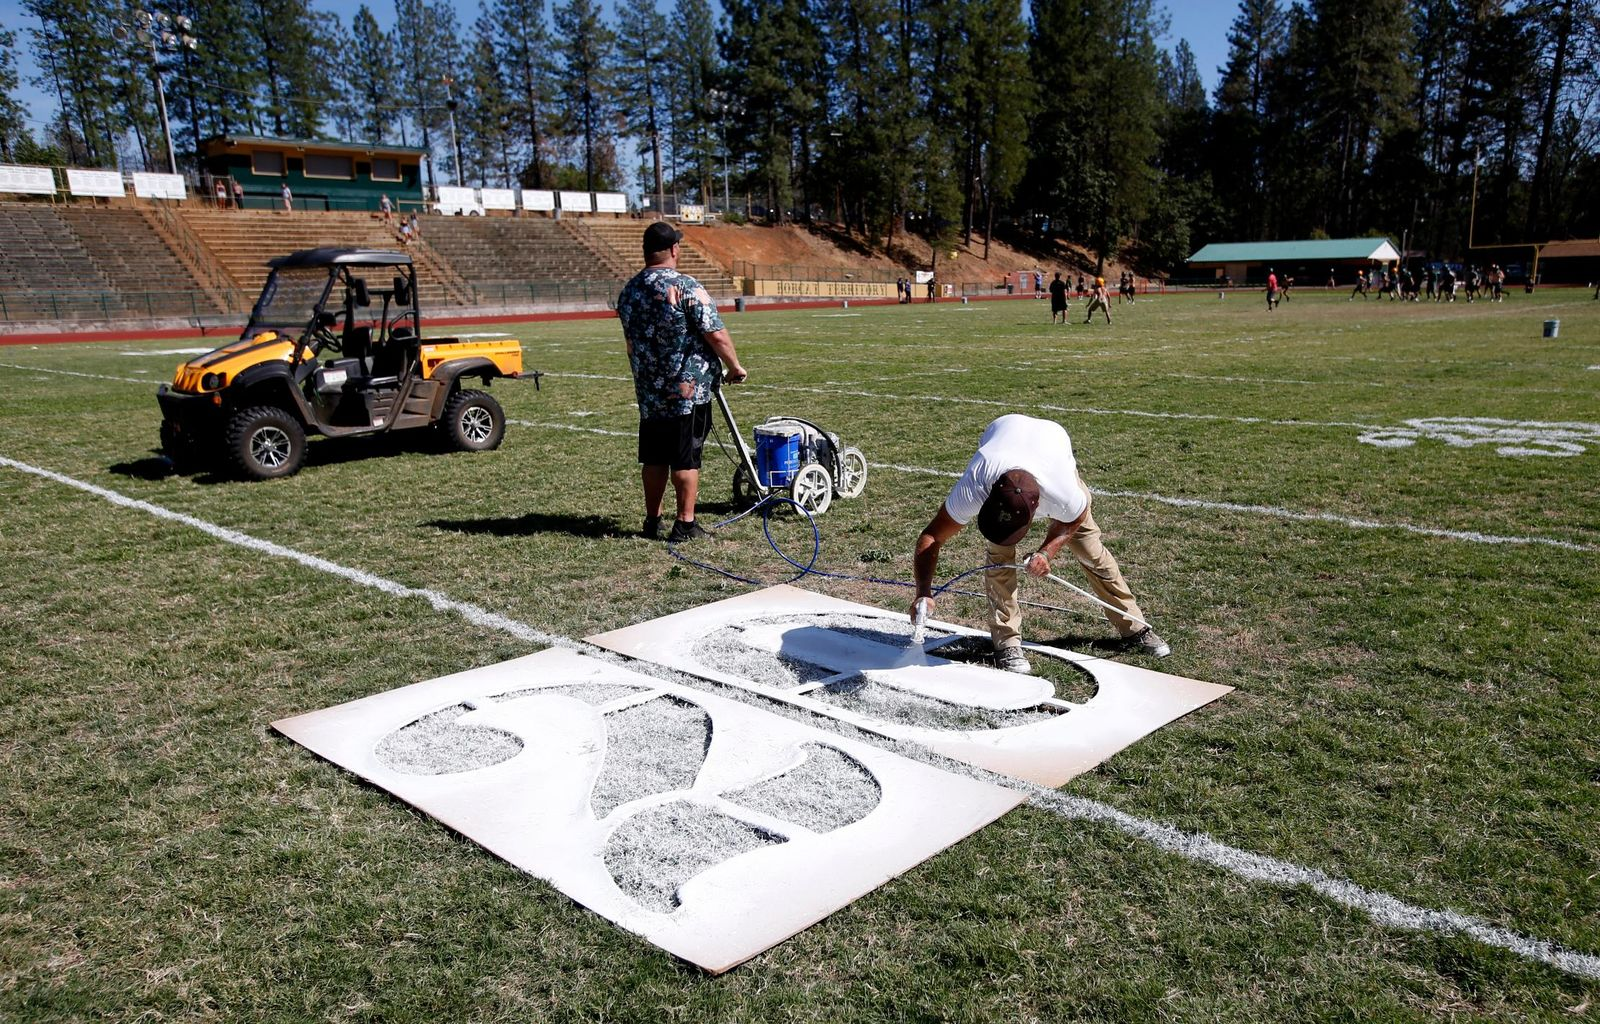 In this Thursday, Aug. 22, 2019, photo, Paul Orlando, right, the defensive coordinator for the Paradise High School football team, paints the numbers on the field in preparation for the teams first game of the season in Paradise, Calif. (AP Photo/Rich Pedroncelli)